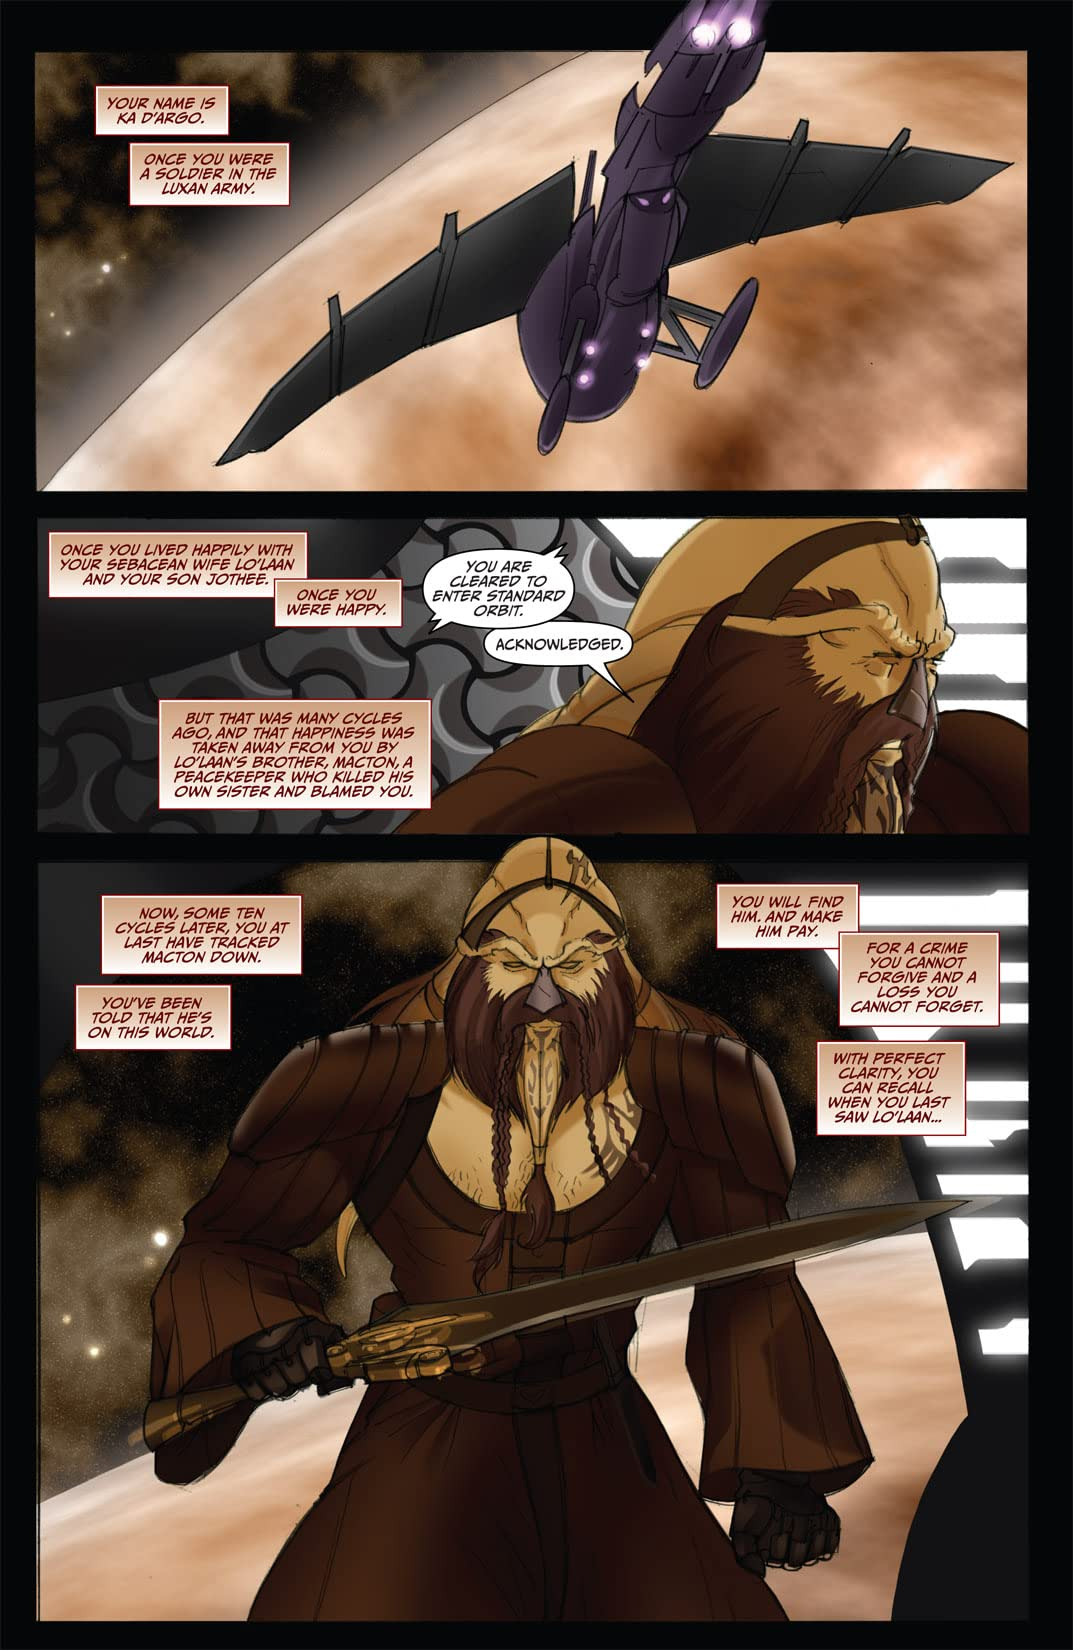 Farscape: Uncharted Tales Vol. 2: D'Argo's Trial #3 (of 4)